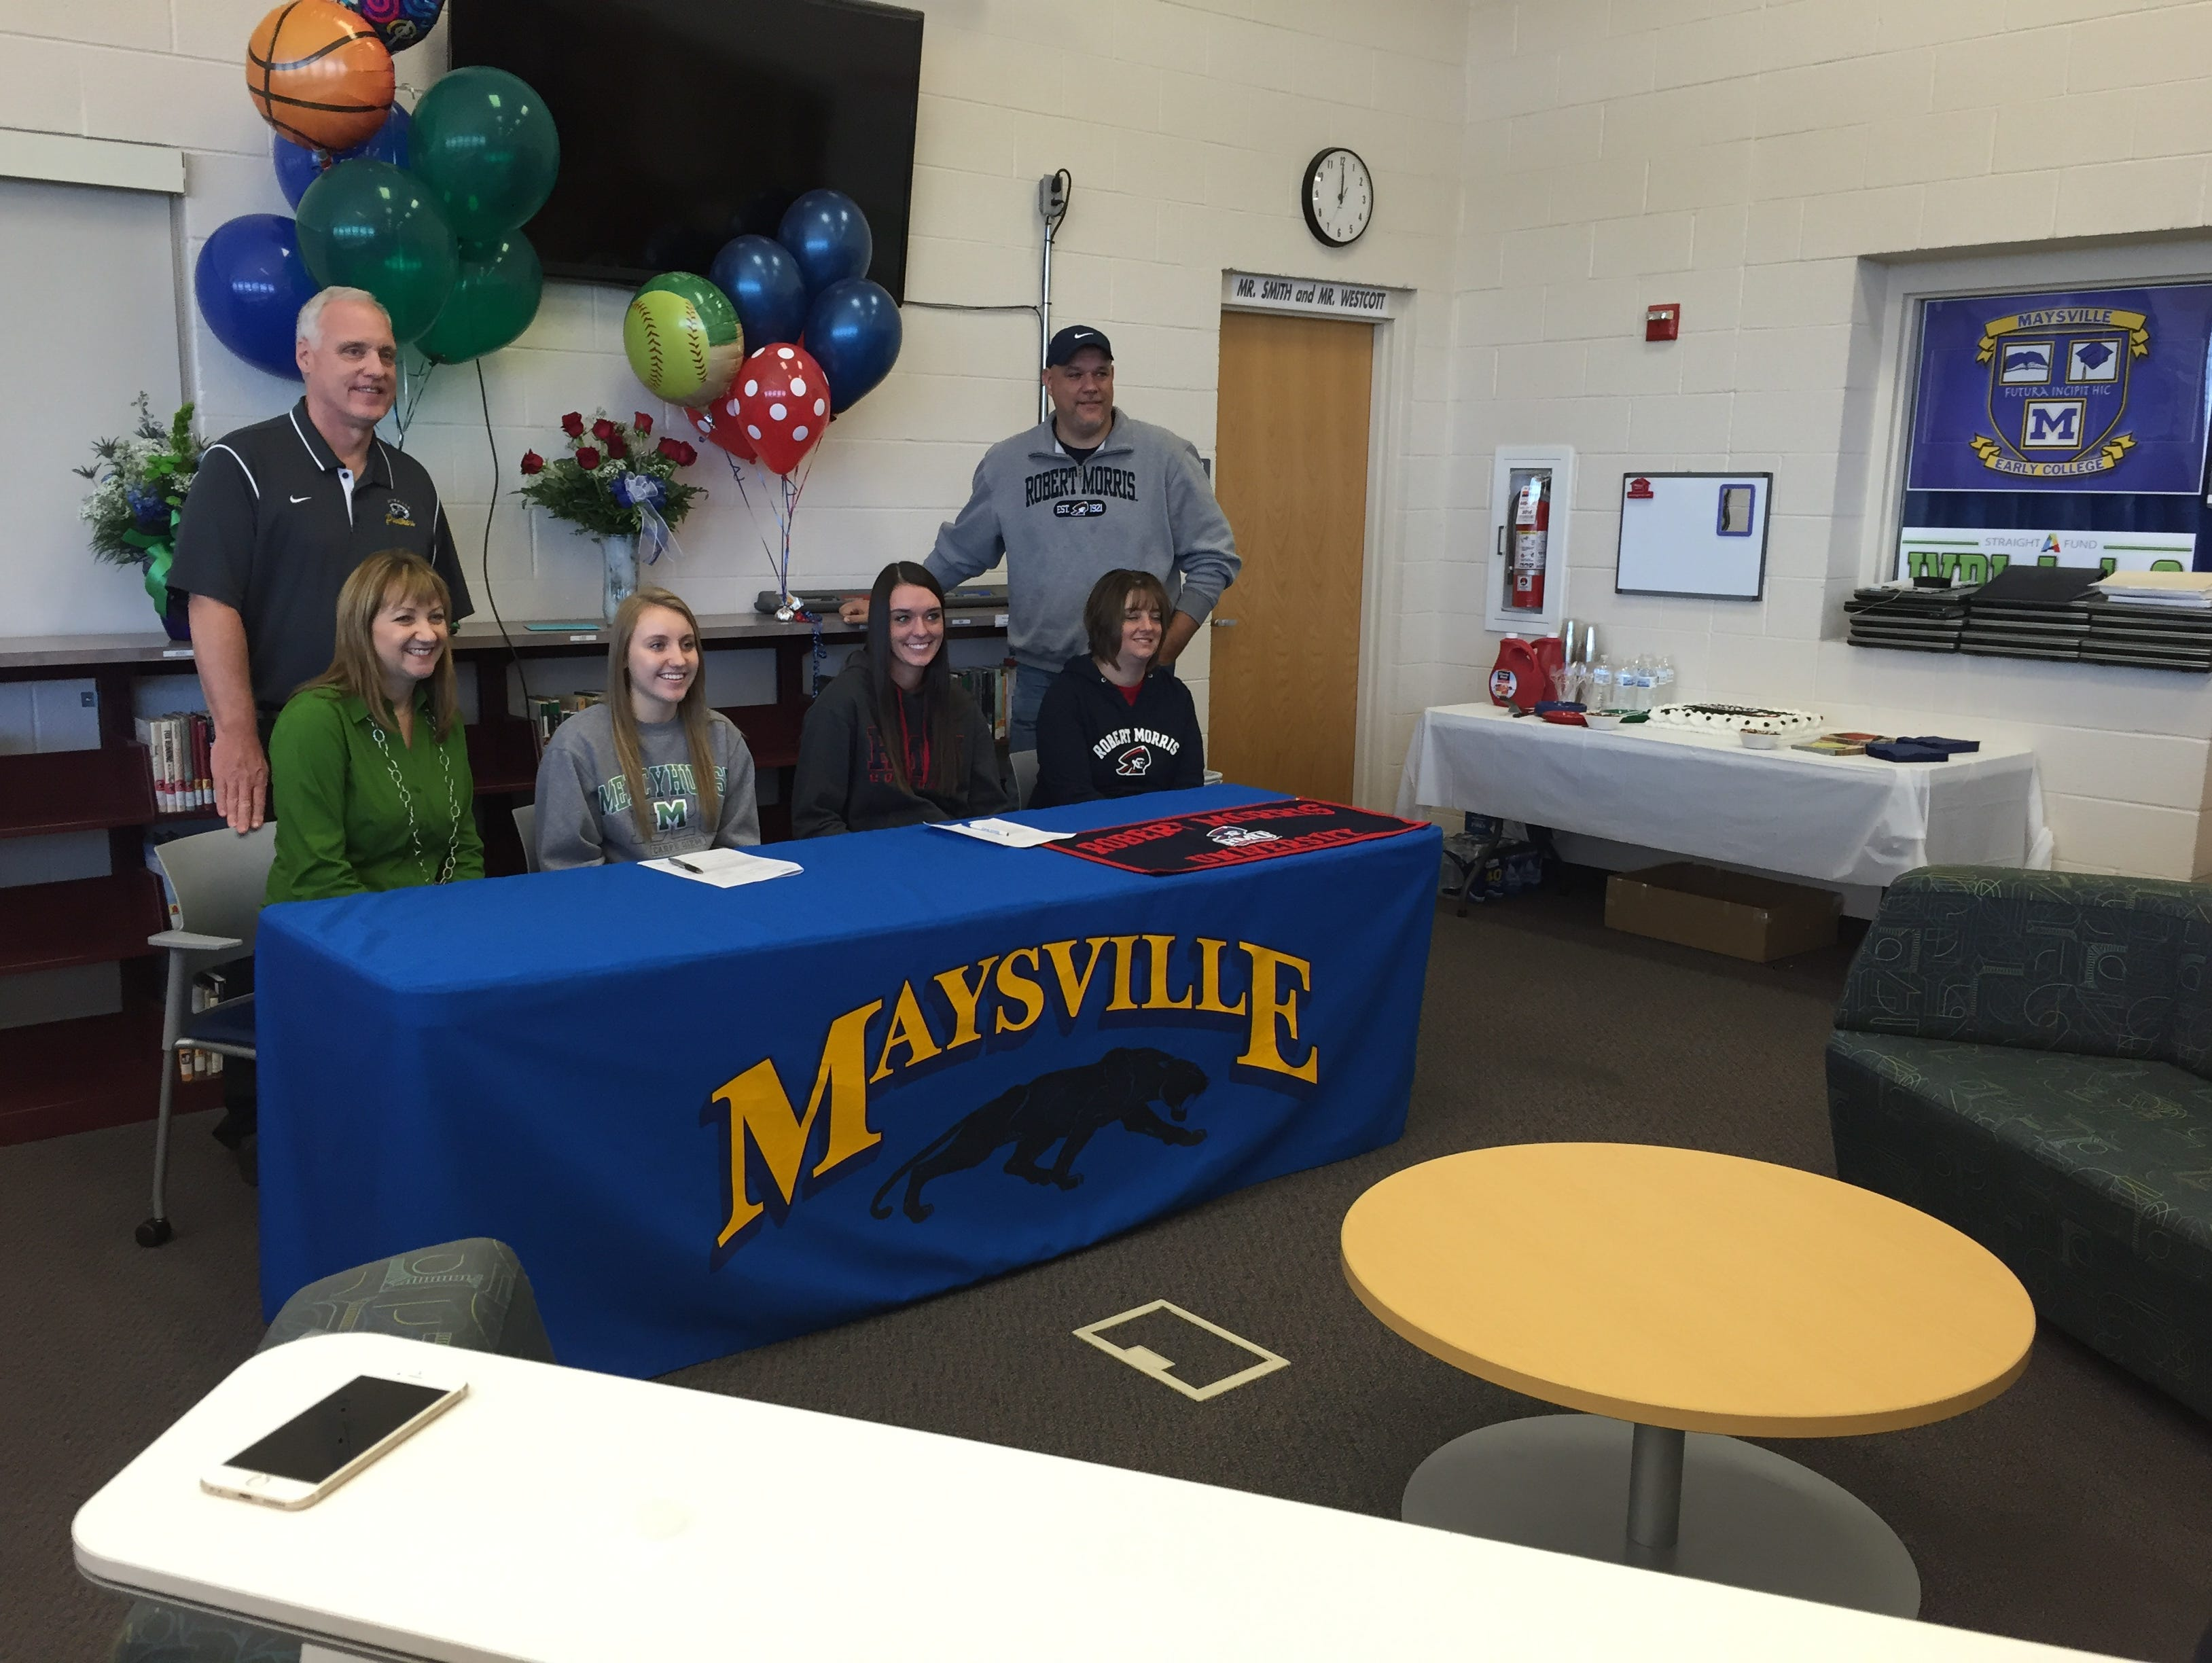 Maysville seniors Kori Sidwell and Madison Riggle signed their letters of intent Thursday at the high school. Pictured are (from top left: Lou Sidwell, Terri Sidwell, Kori Sidwell, Madison Riggle, Melissa Riggle and Kyle Riggle.